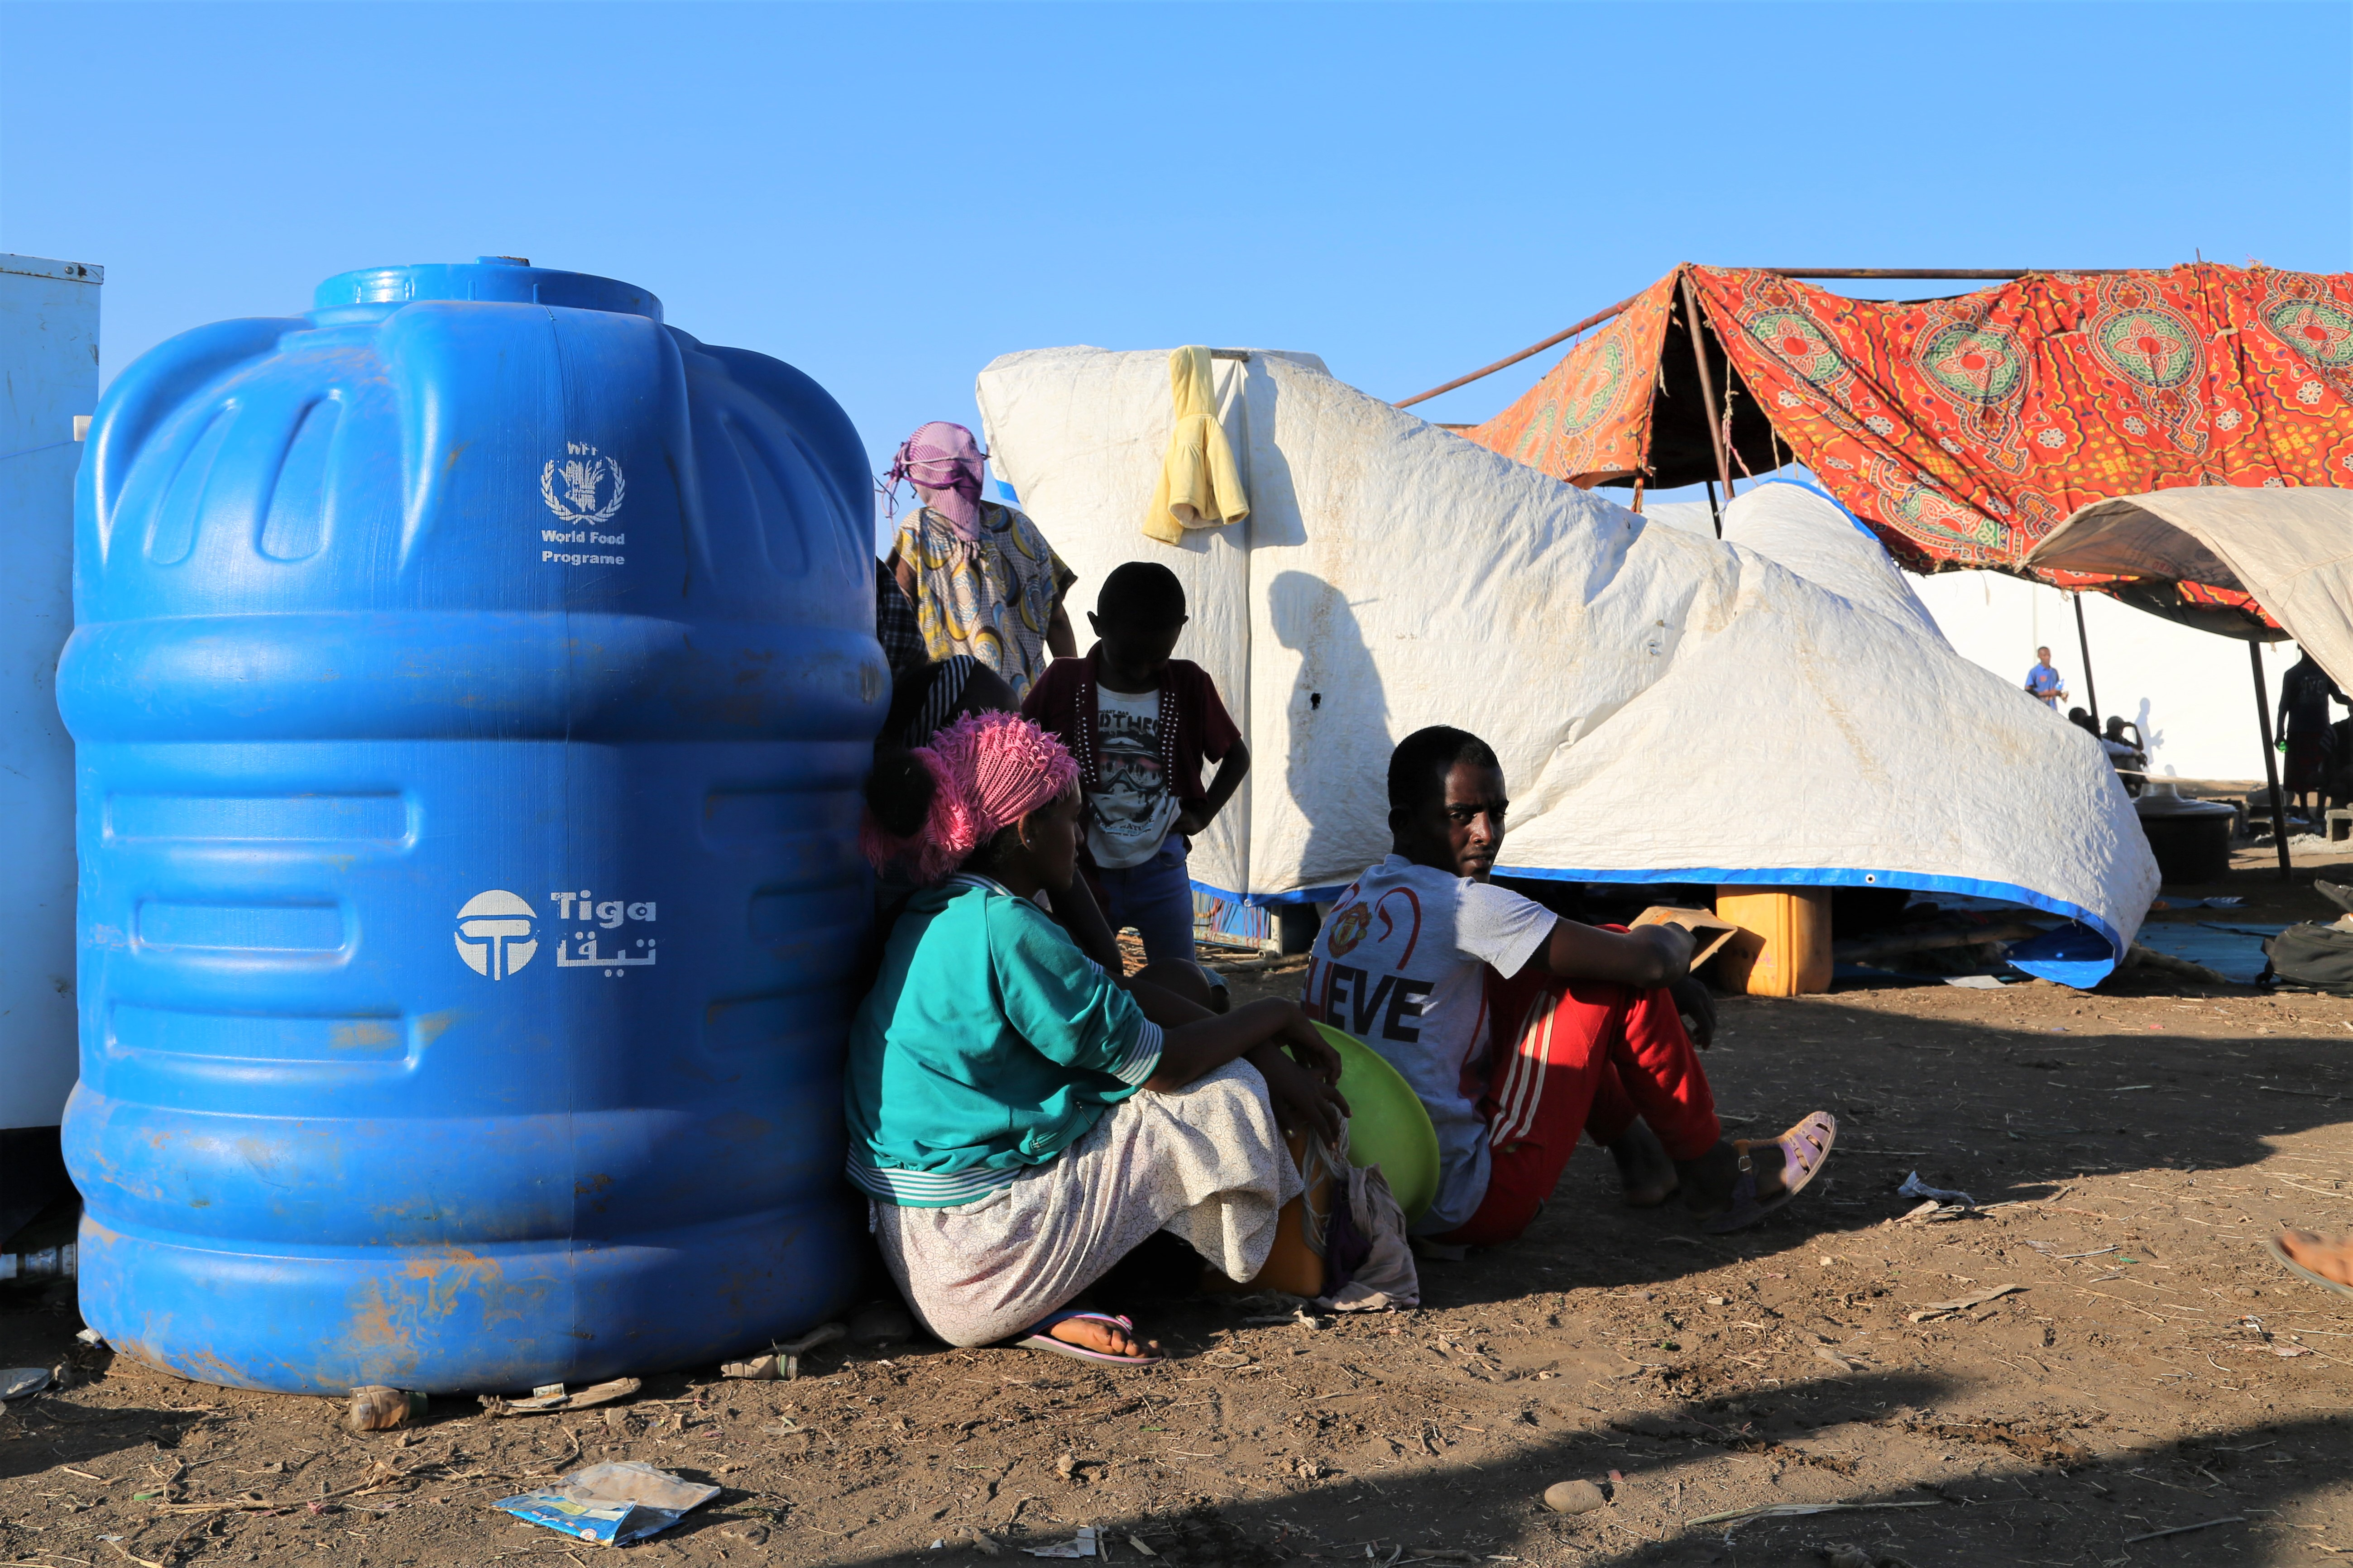 People sit against a large blue container of water at the camp.